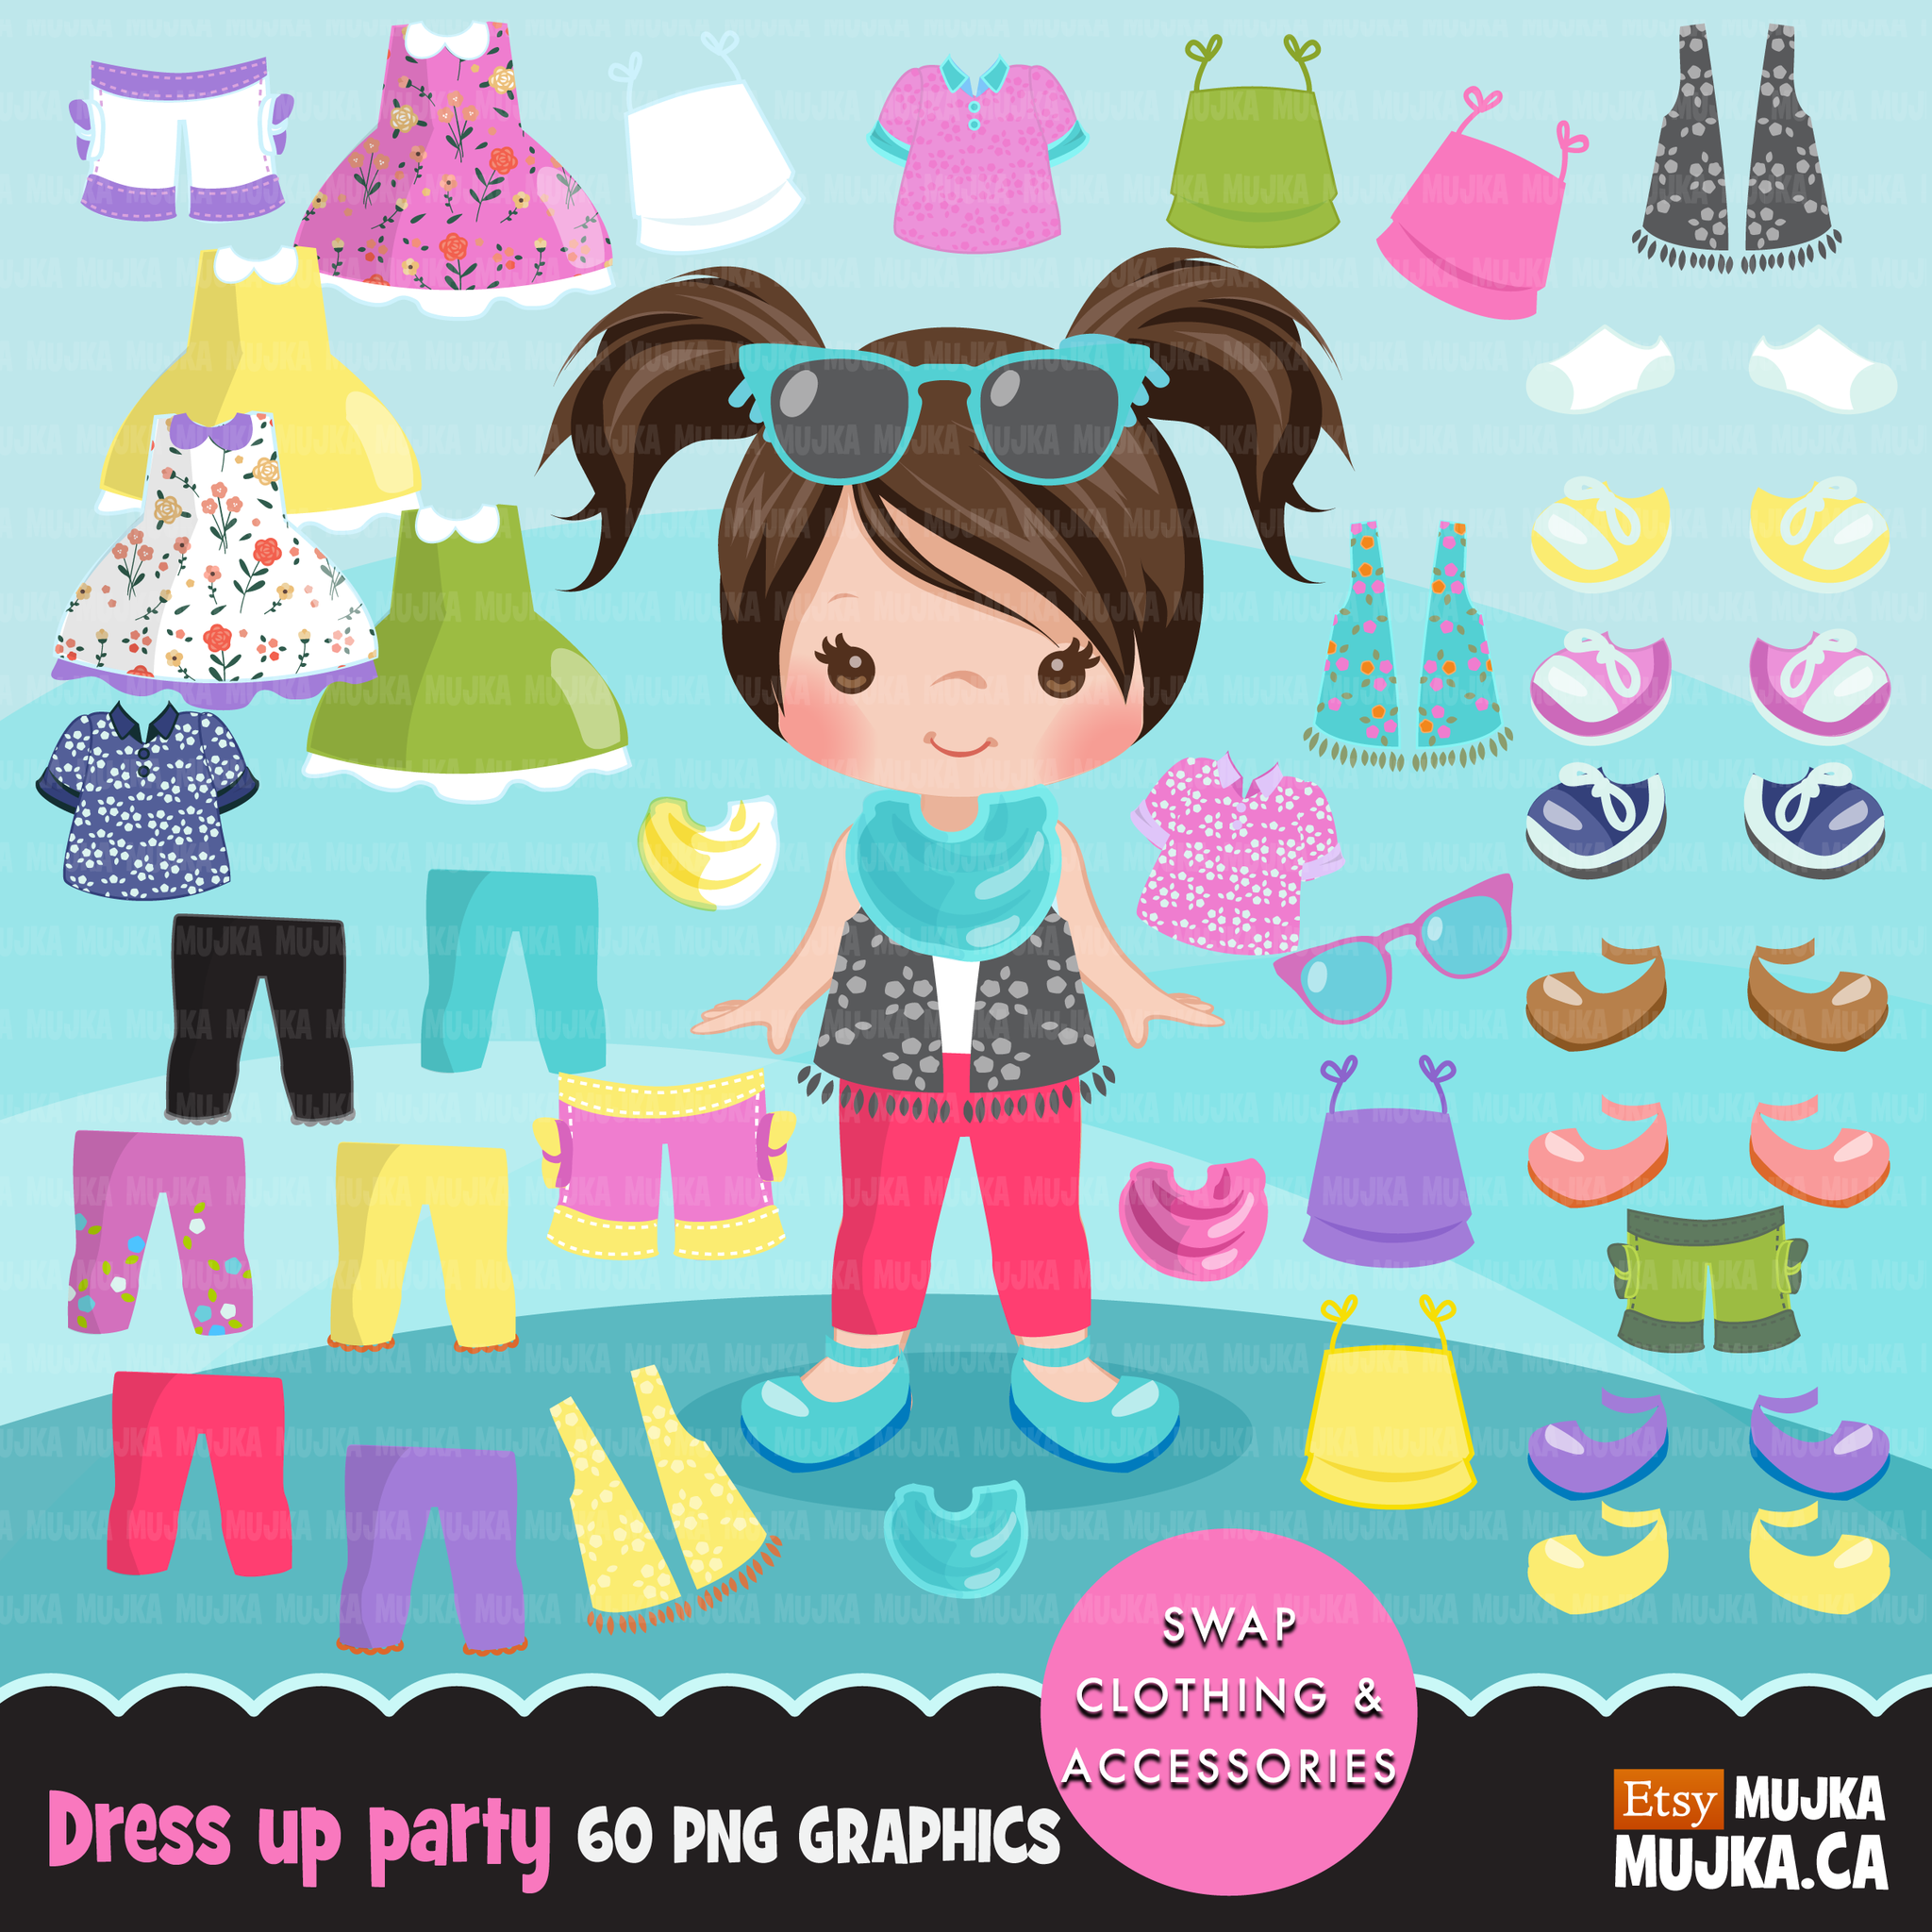 Paper Doll clipart Bundle. Collection of little girl clothing and  accessories.